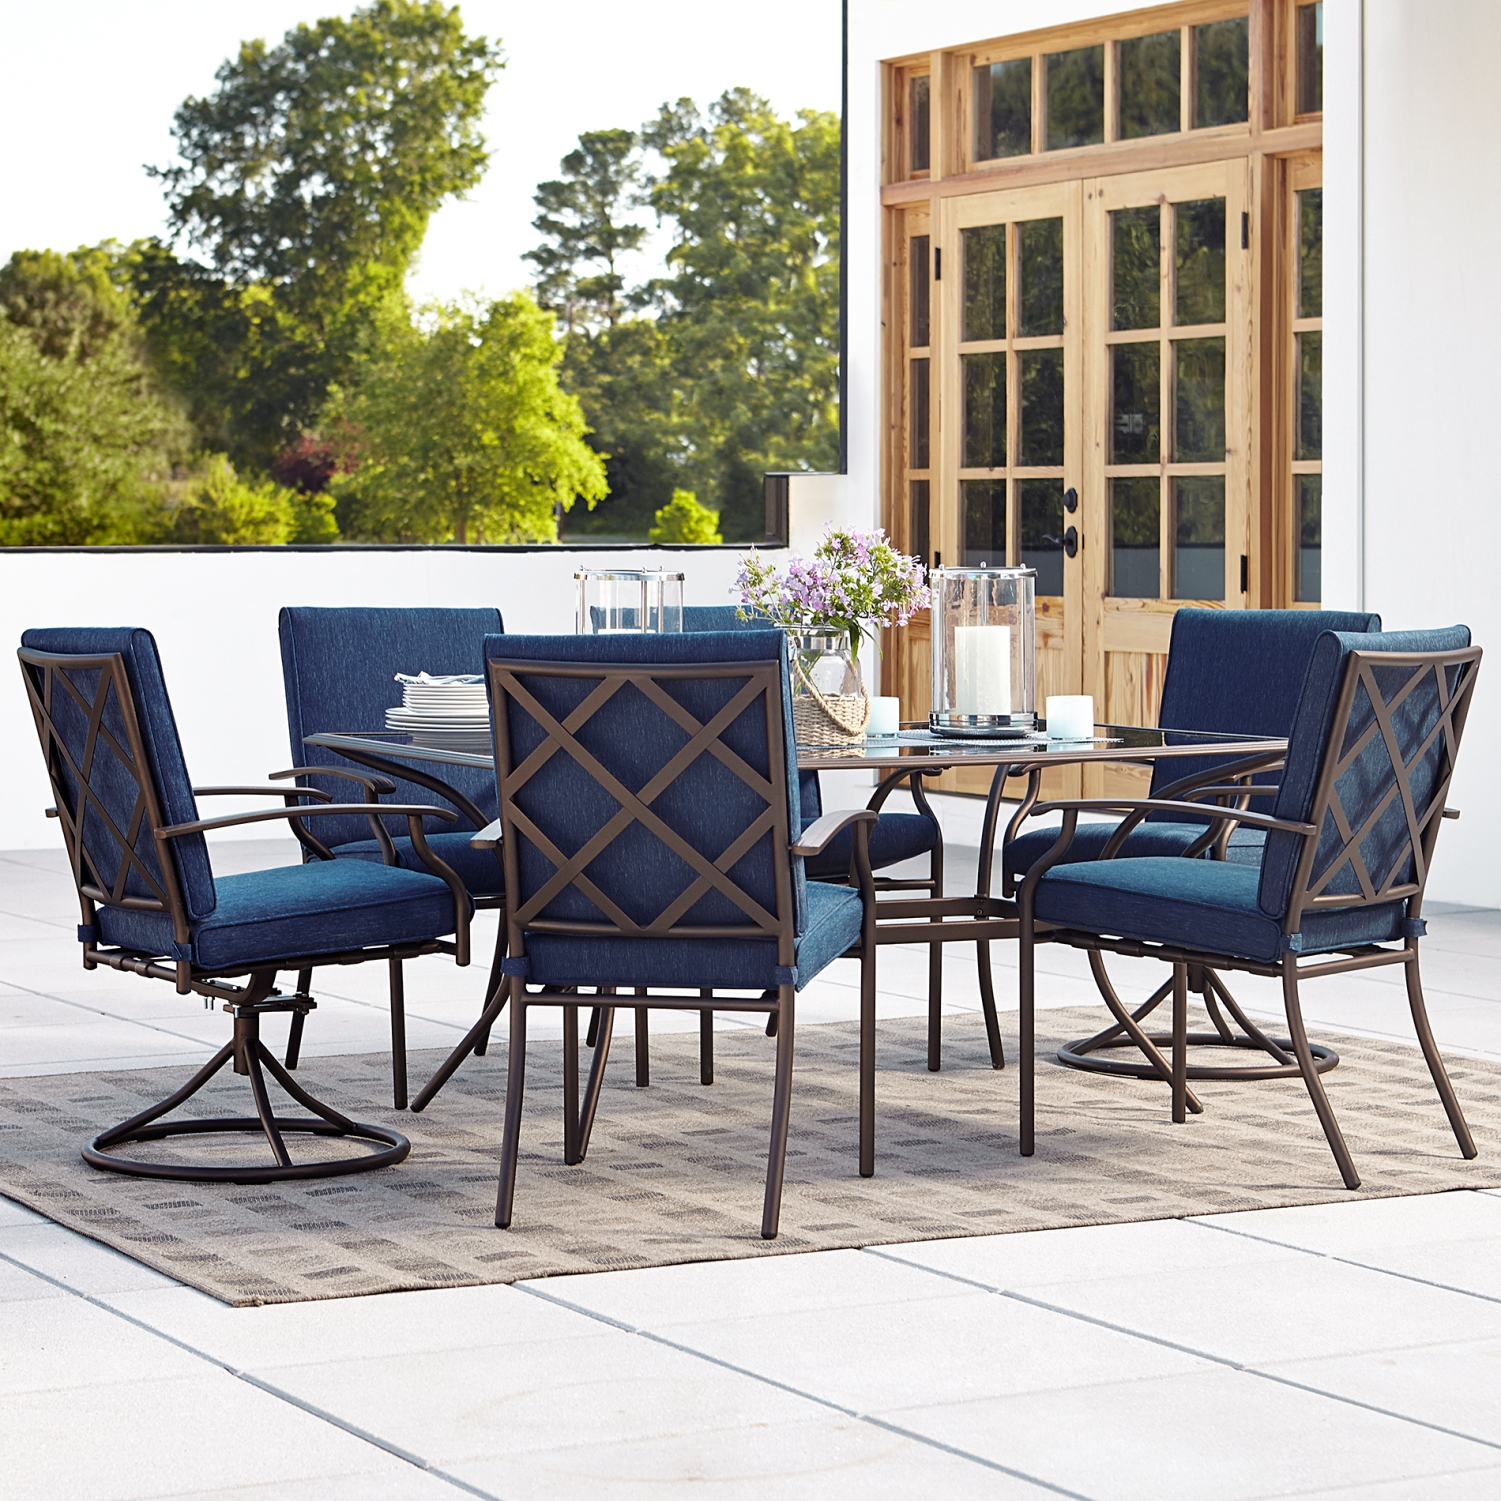 Large size of living roomhigh resolution outdoor furniture for Best outdoor dining rooms